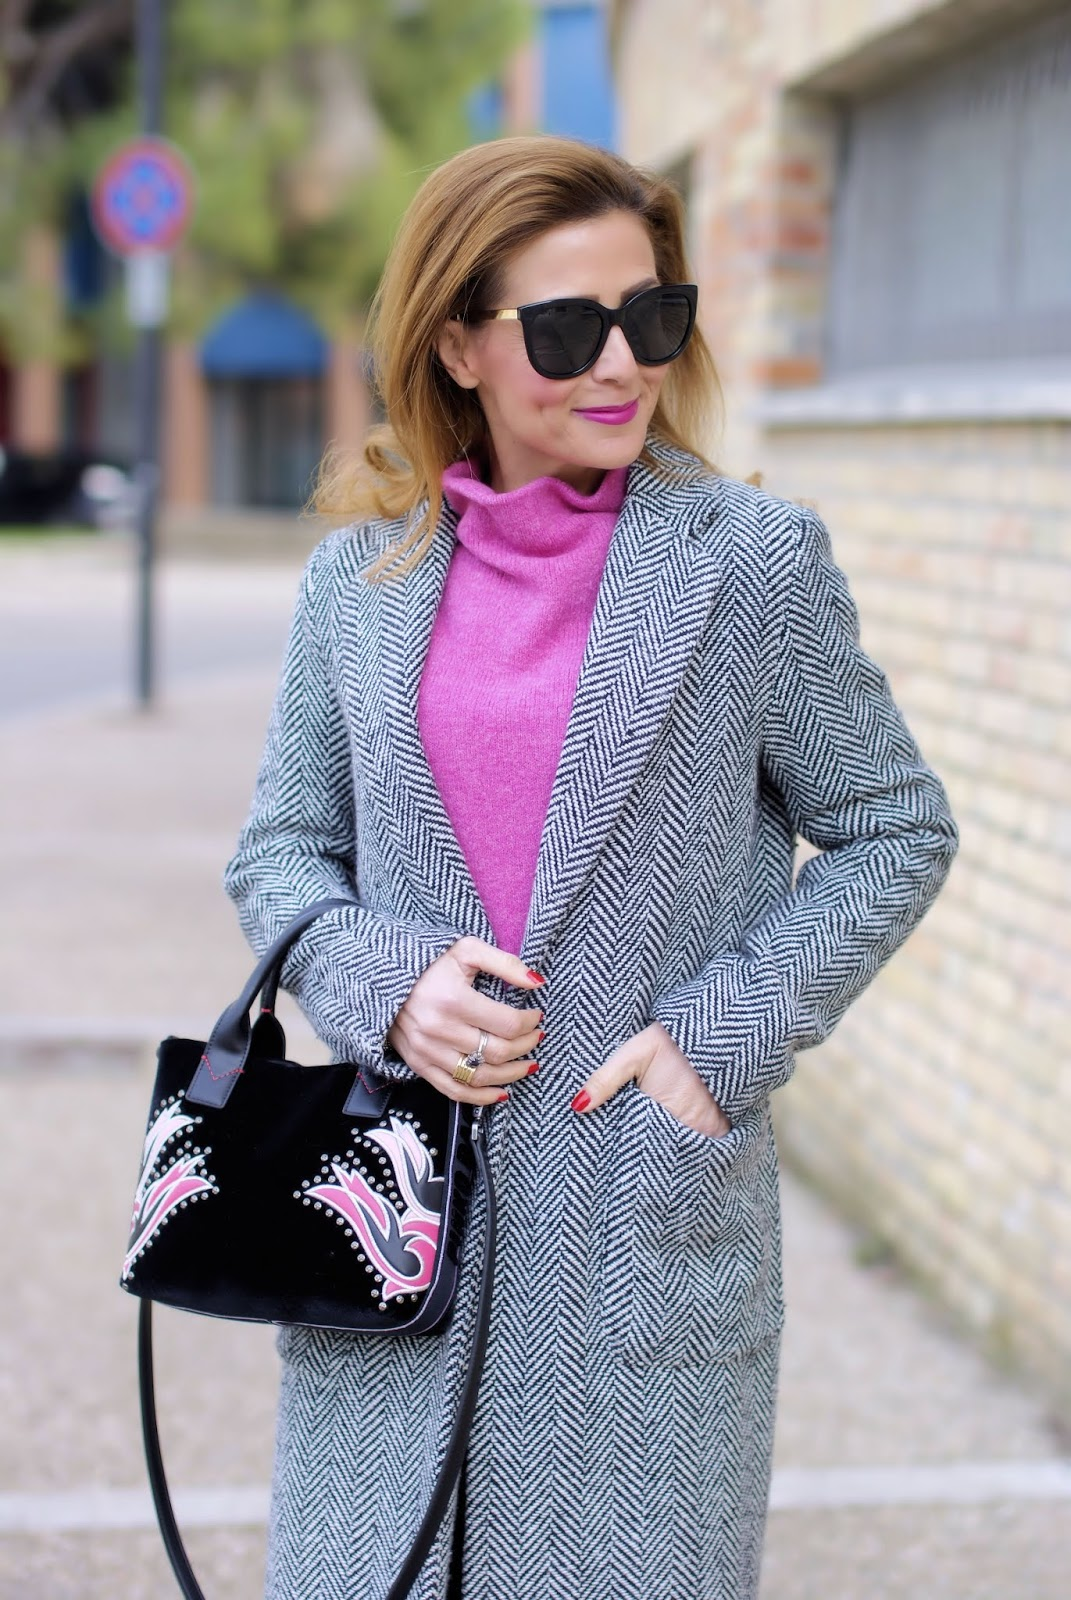 Don't stop me now: last outfit of 2018 with Pink bag on Fashion and Cookies fashion blog, fashion blogger style